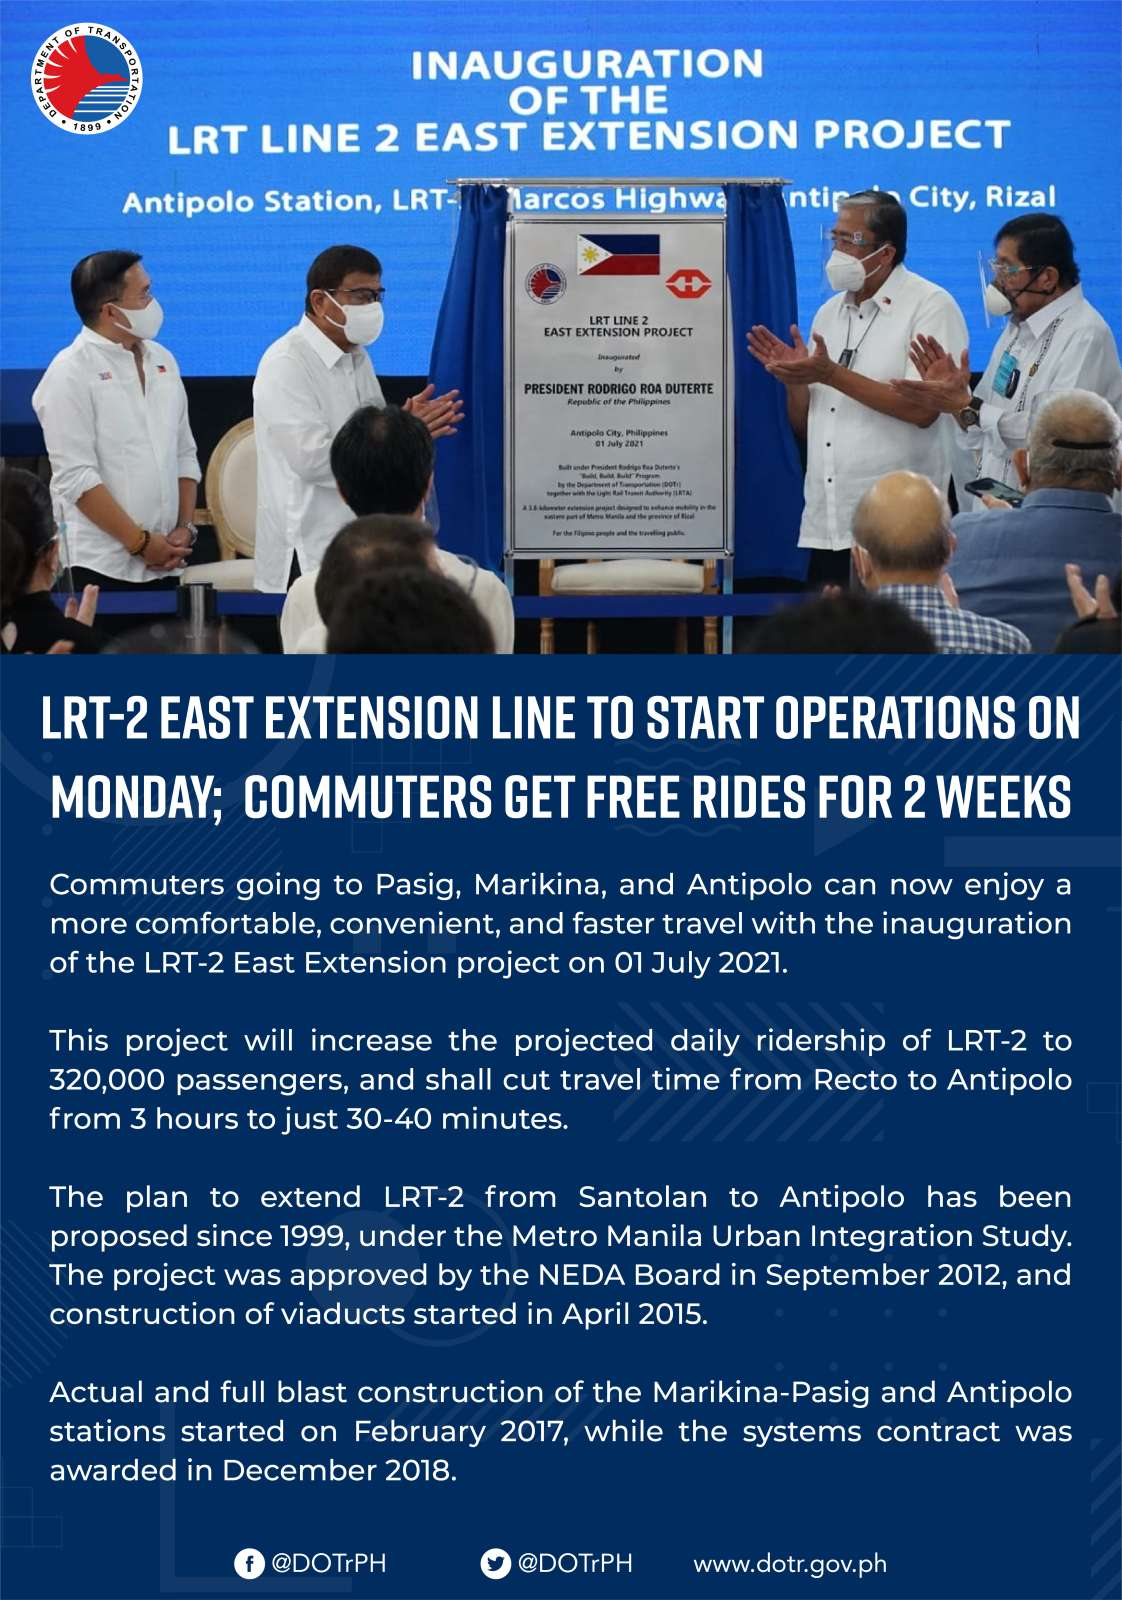 Opening of LRT-2 East Extension Line